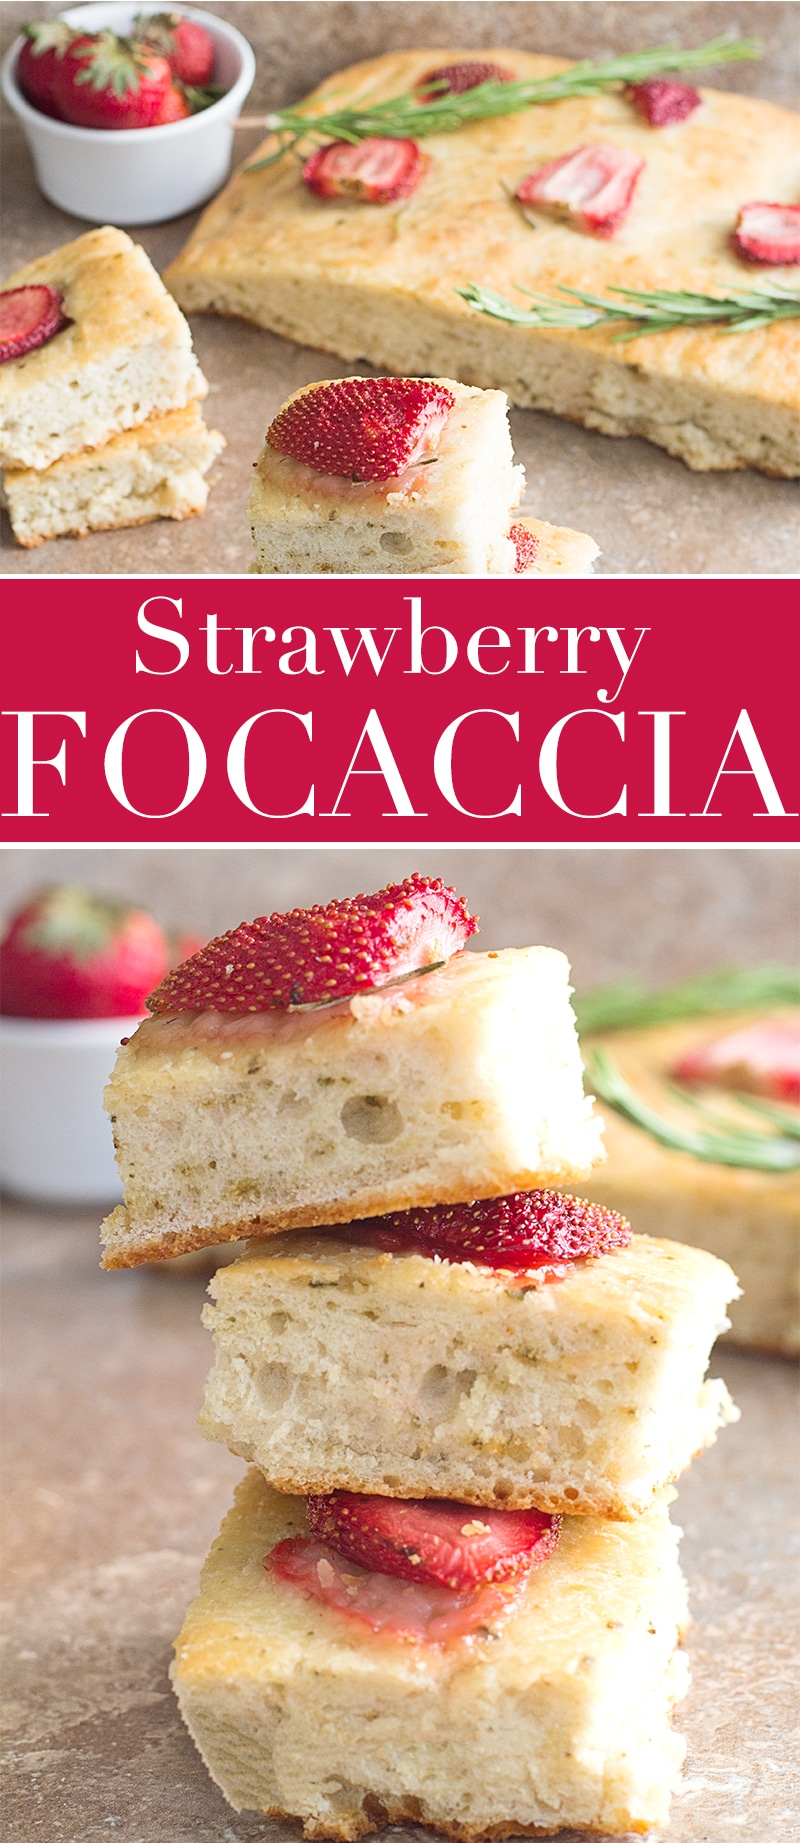 Quick and easy Strawberry Focaccia bread takes only a few ingredients to make and topped with maple glazed Florida Strawberries